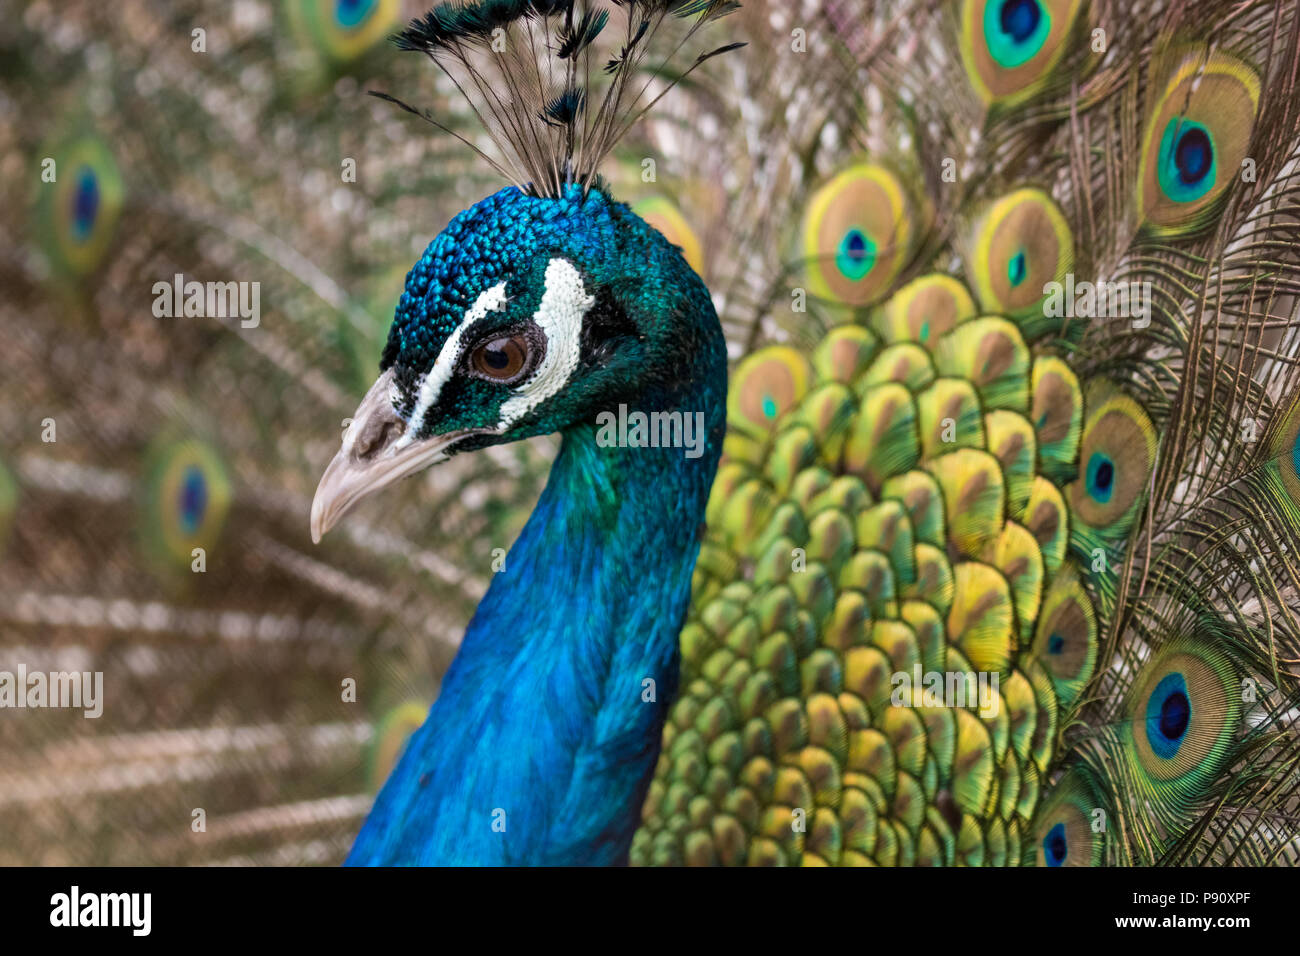 Beautiful male peacock, portrait with his colorful yellow, green and blue feathers out, close-up Stock Photo